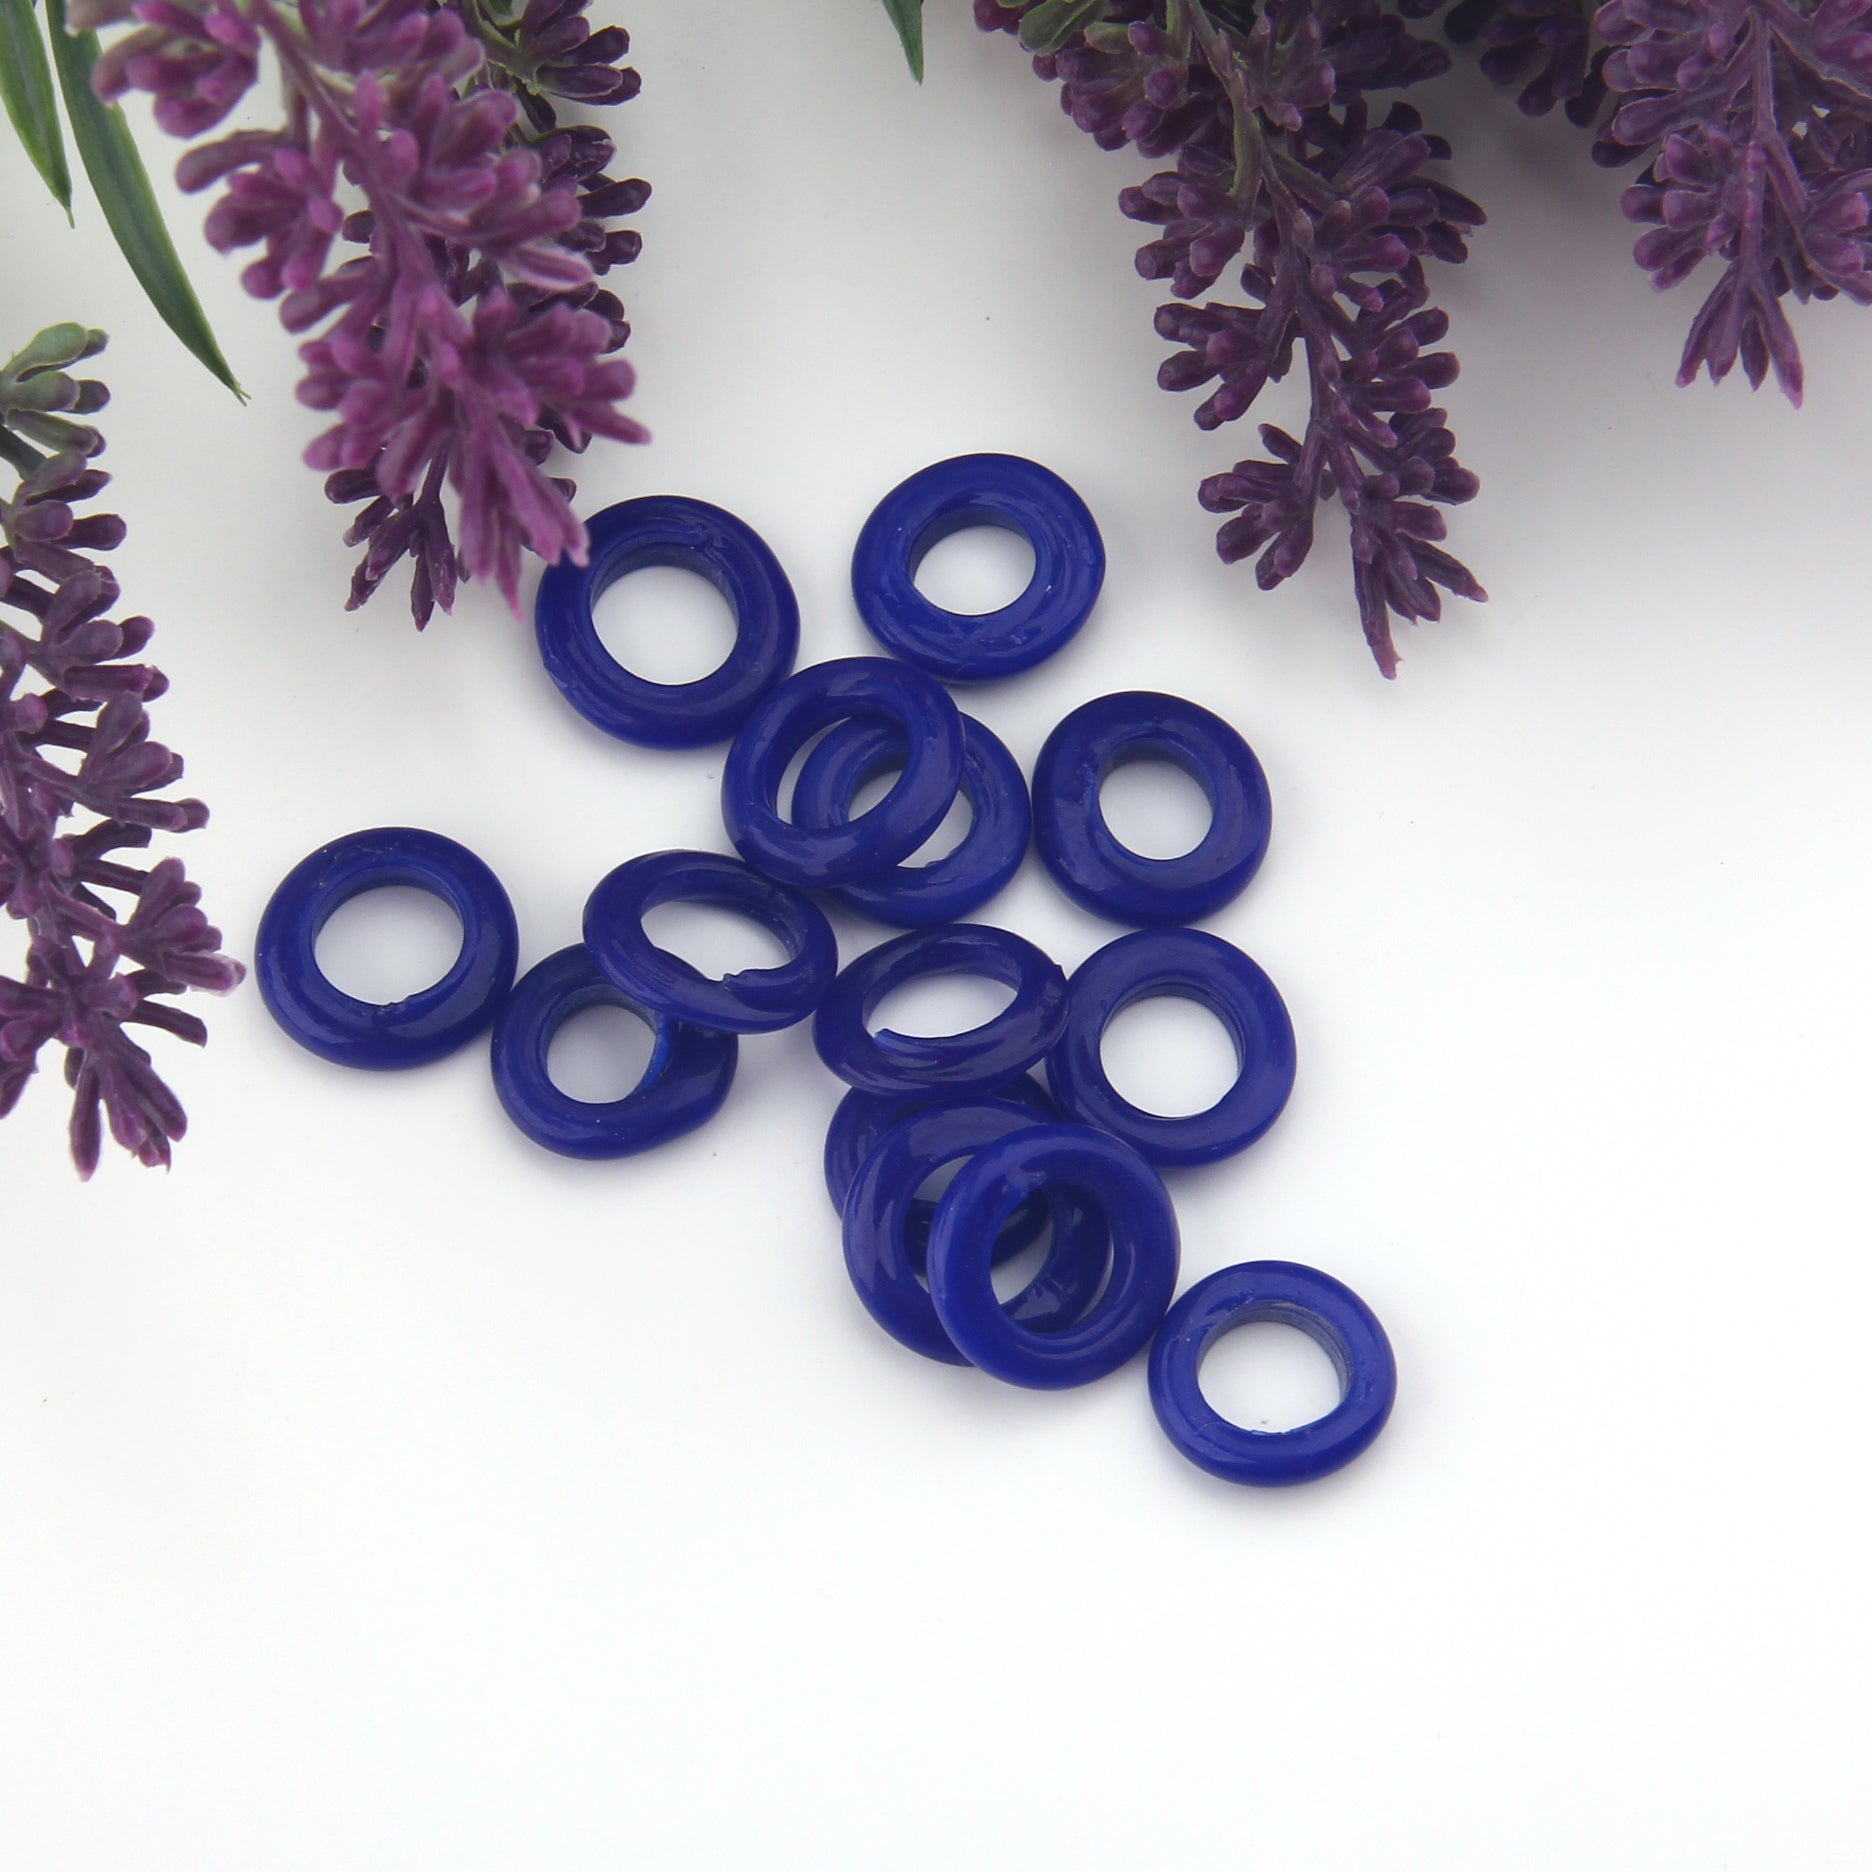 Royal Blue, Lampwork Ring Beads, Handmade Glass Beads, Glass Donut Beads, Glass Circle Beads, 10 pieces // BD-125